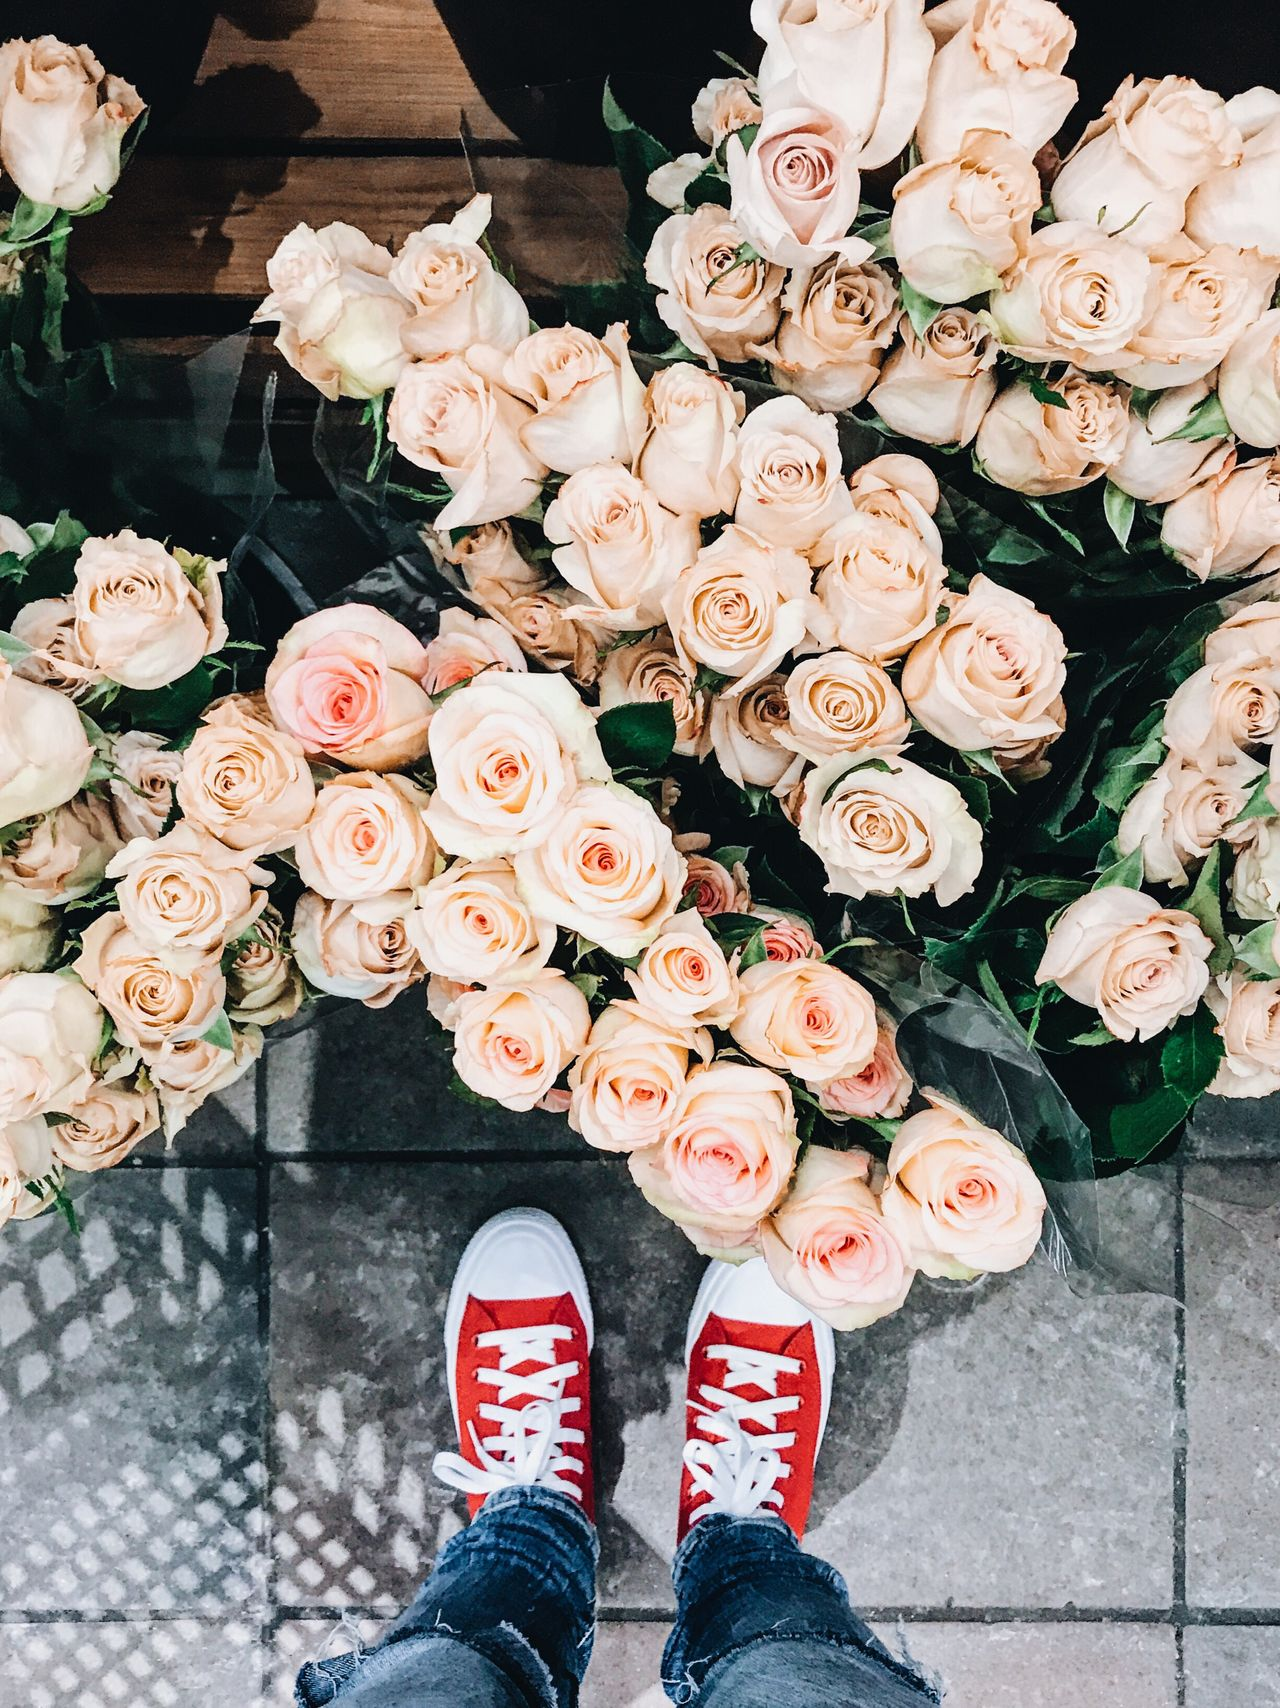 Flower Standing Choice Freshness Shoe High Angle View Low Section Real People Outdoors Variation Human Leg Fragility Multi Colored Beauty In Nature Flower Head Day One Person Nature Canvas Shoe Human Body Part